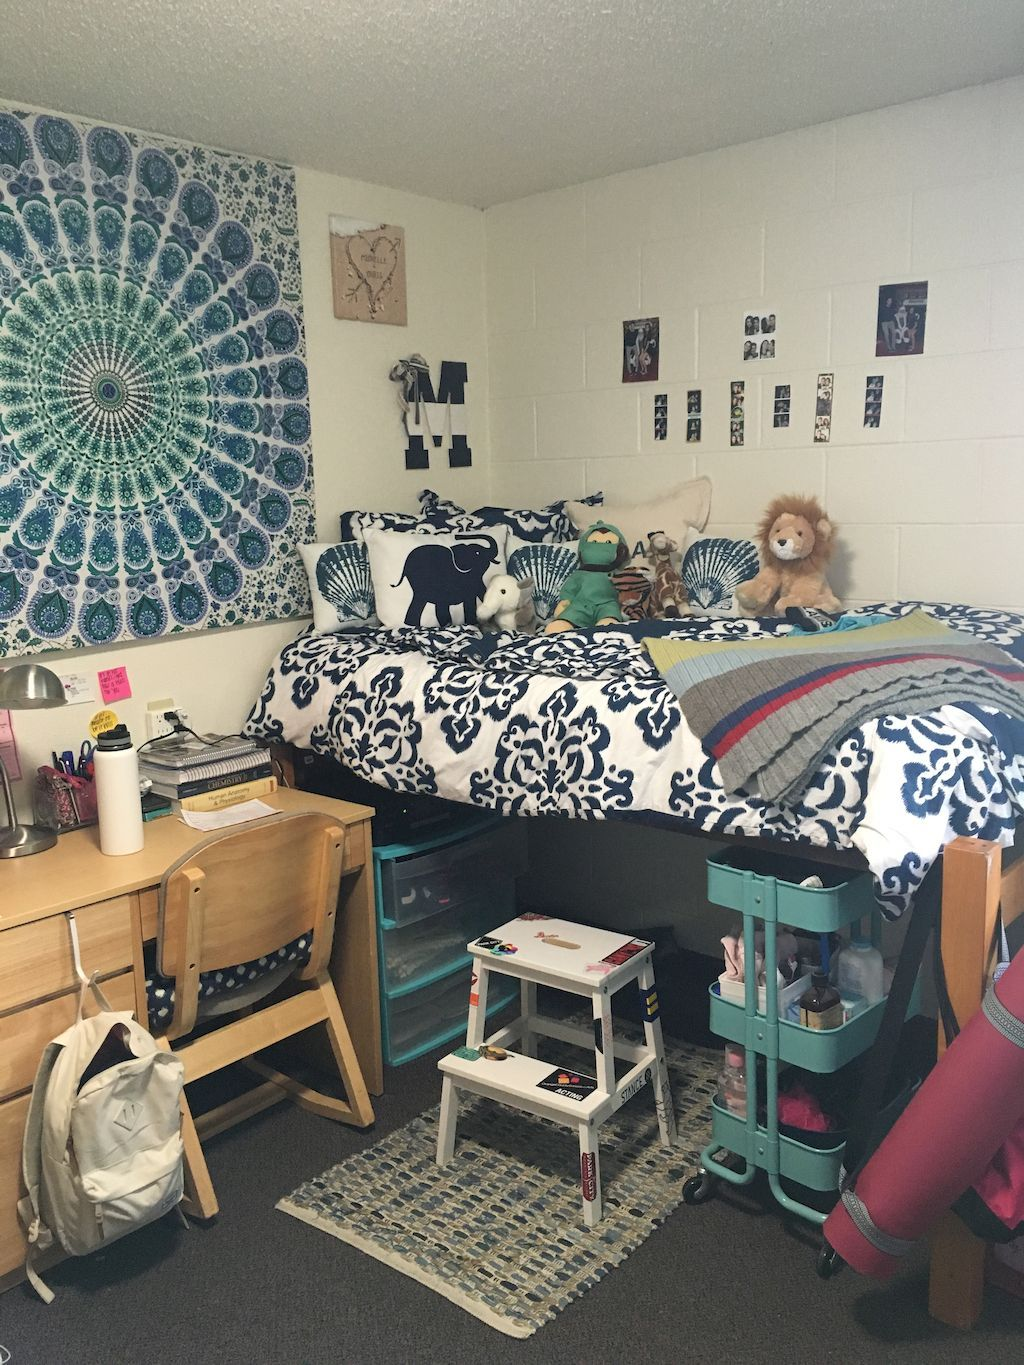 75 creative dorm room storage organization ideas on a - College dorm room ideas examples ...